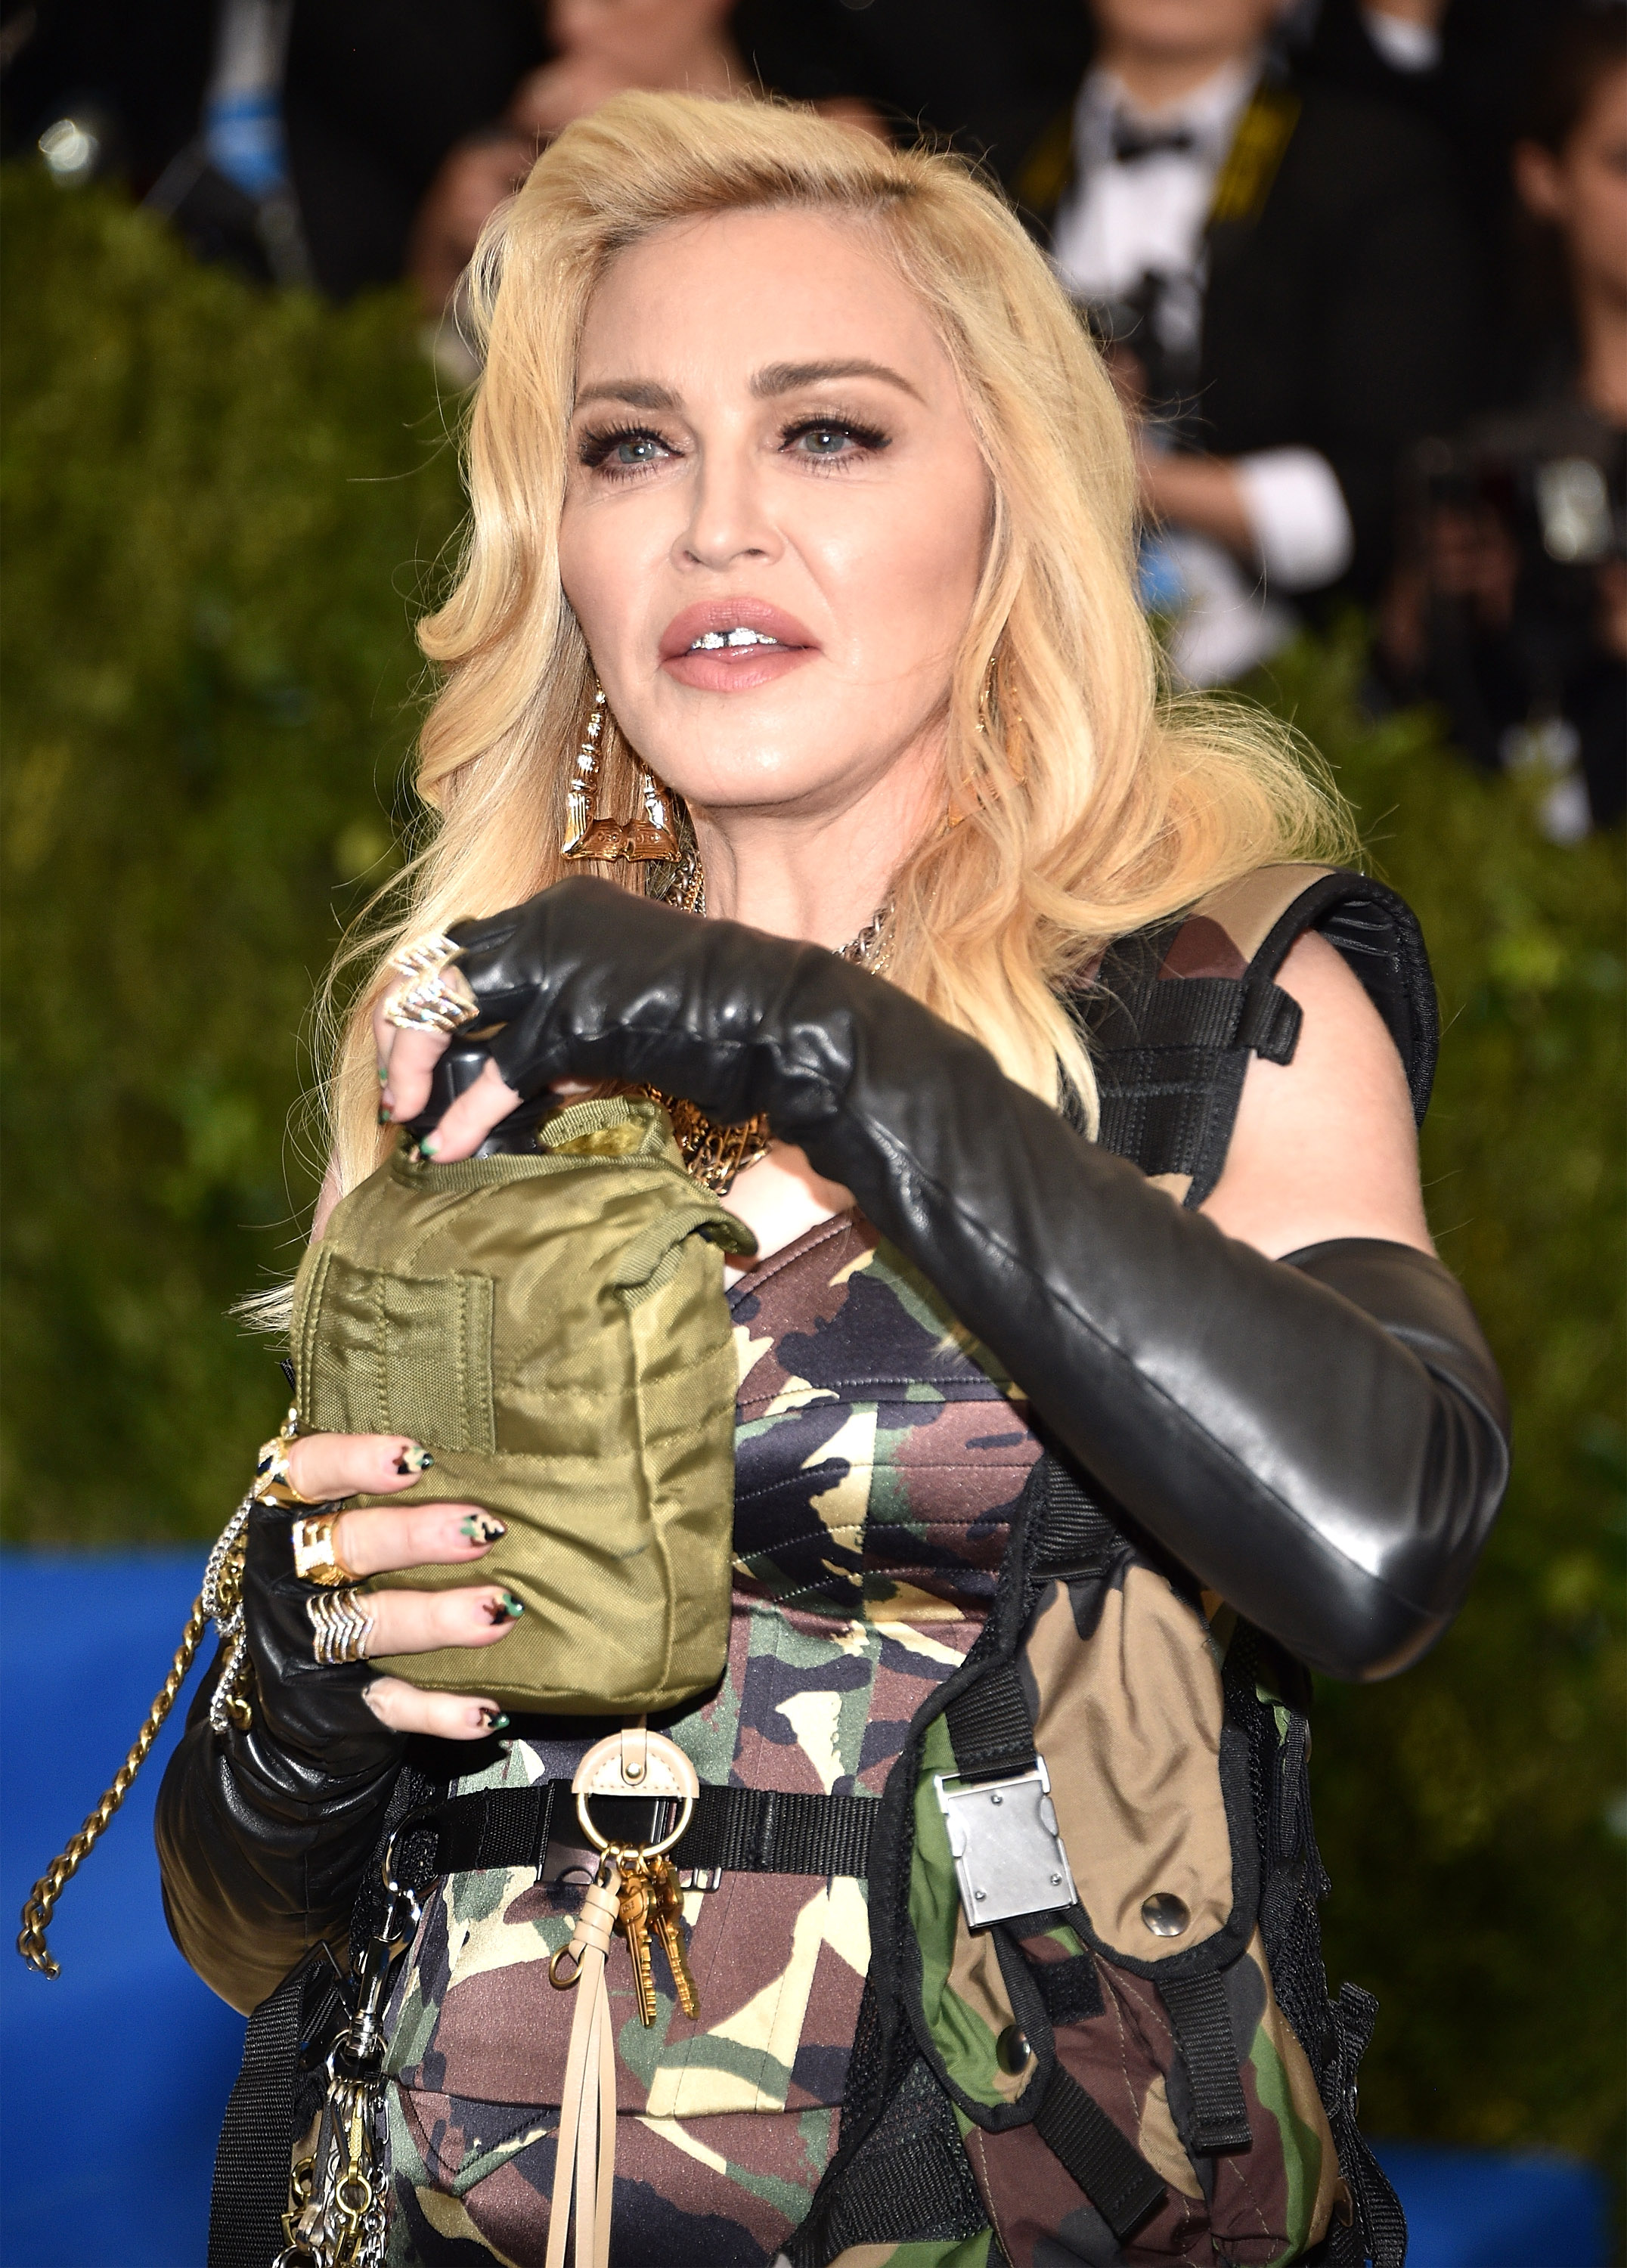 Military fashion 2017 - Is Madonna Wearing Camo At The 2017 Met Gala